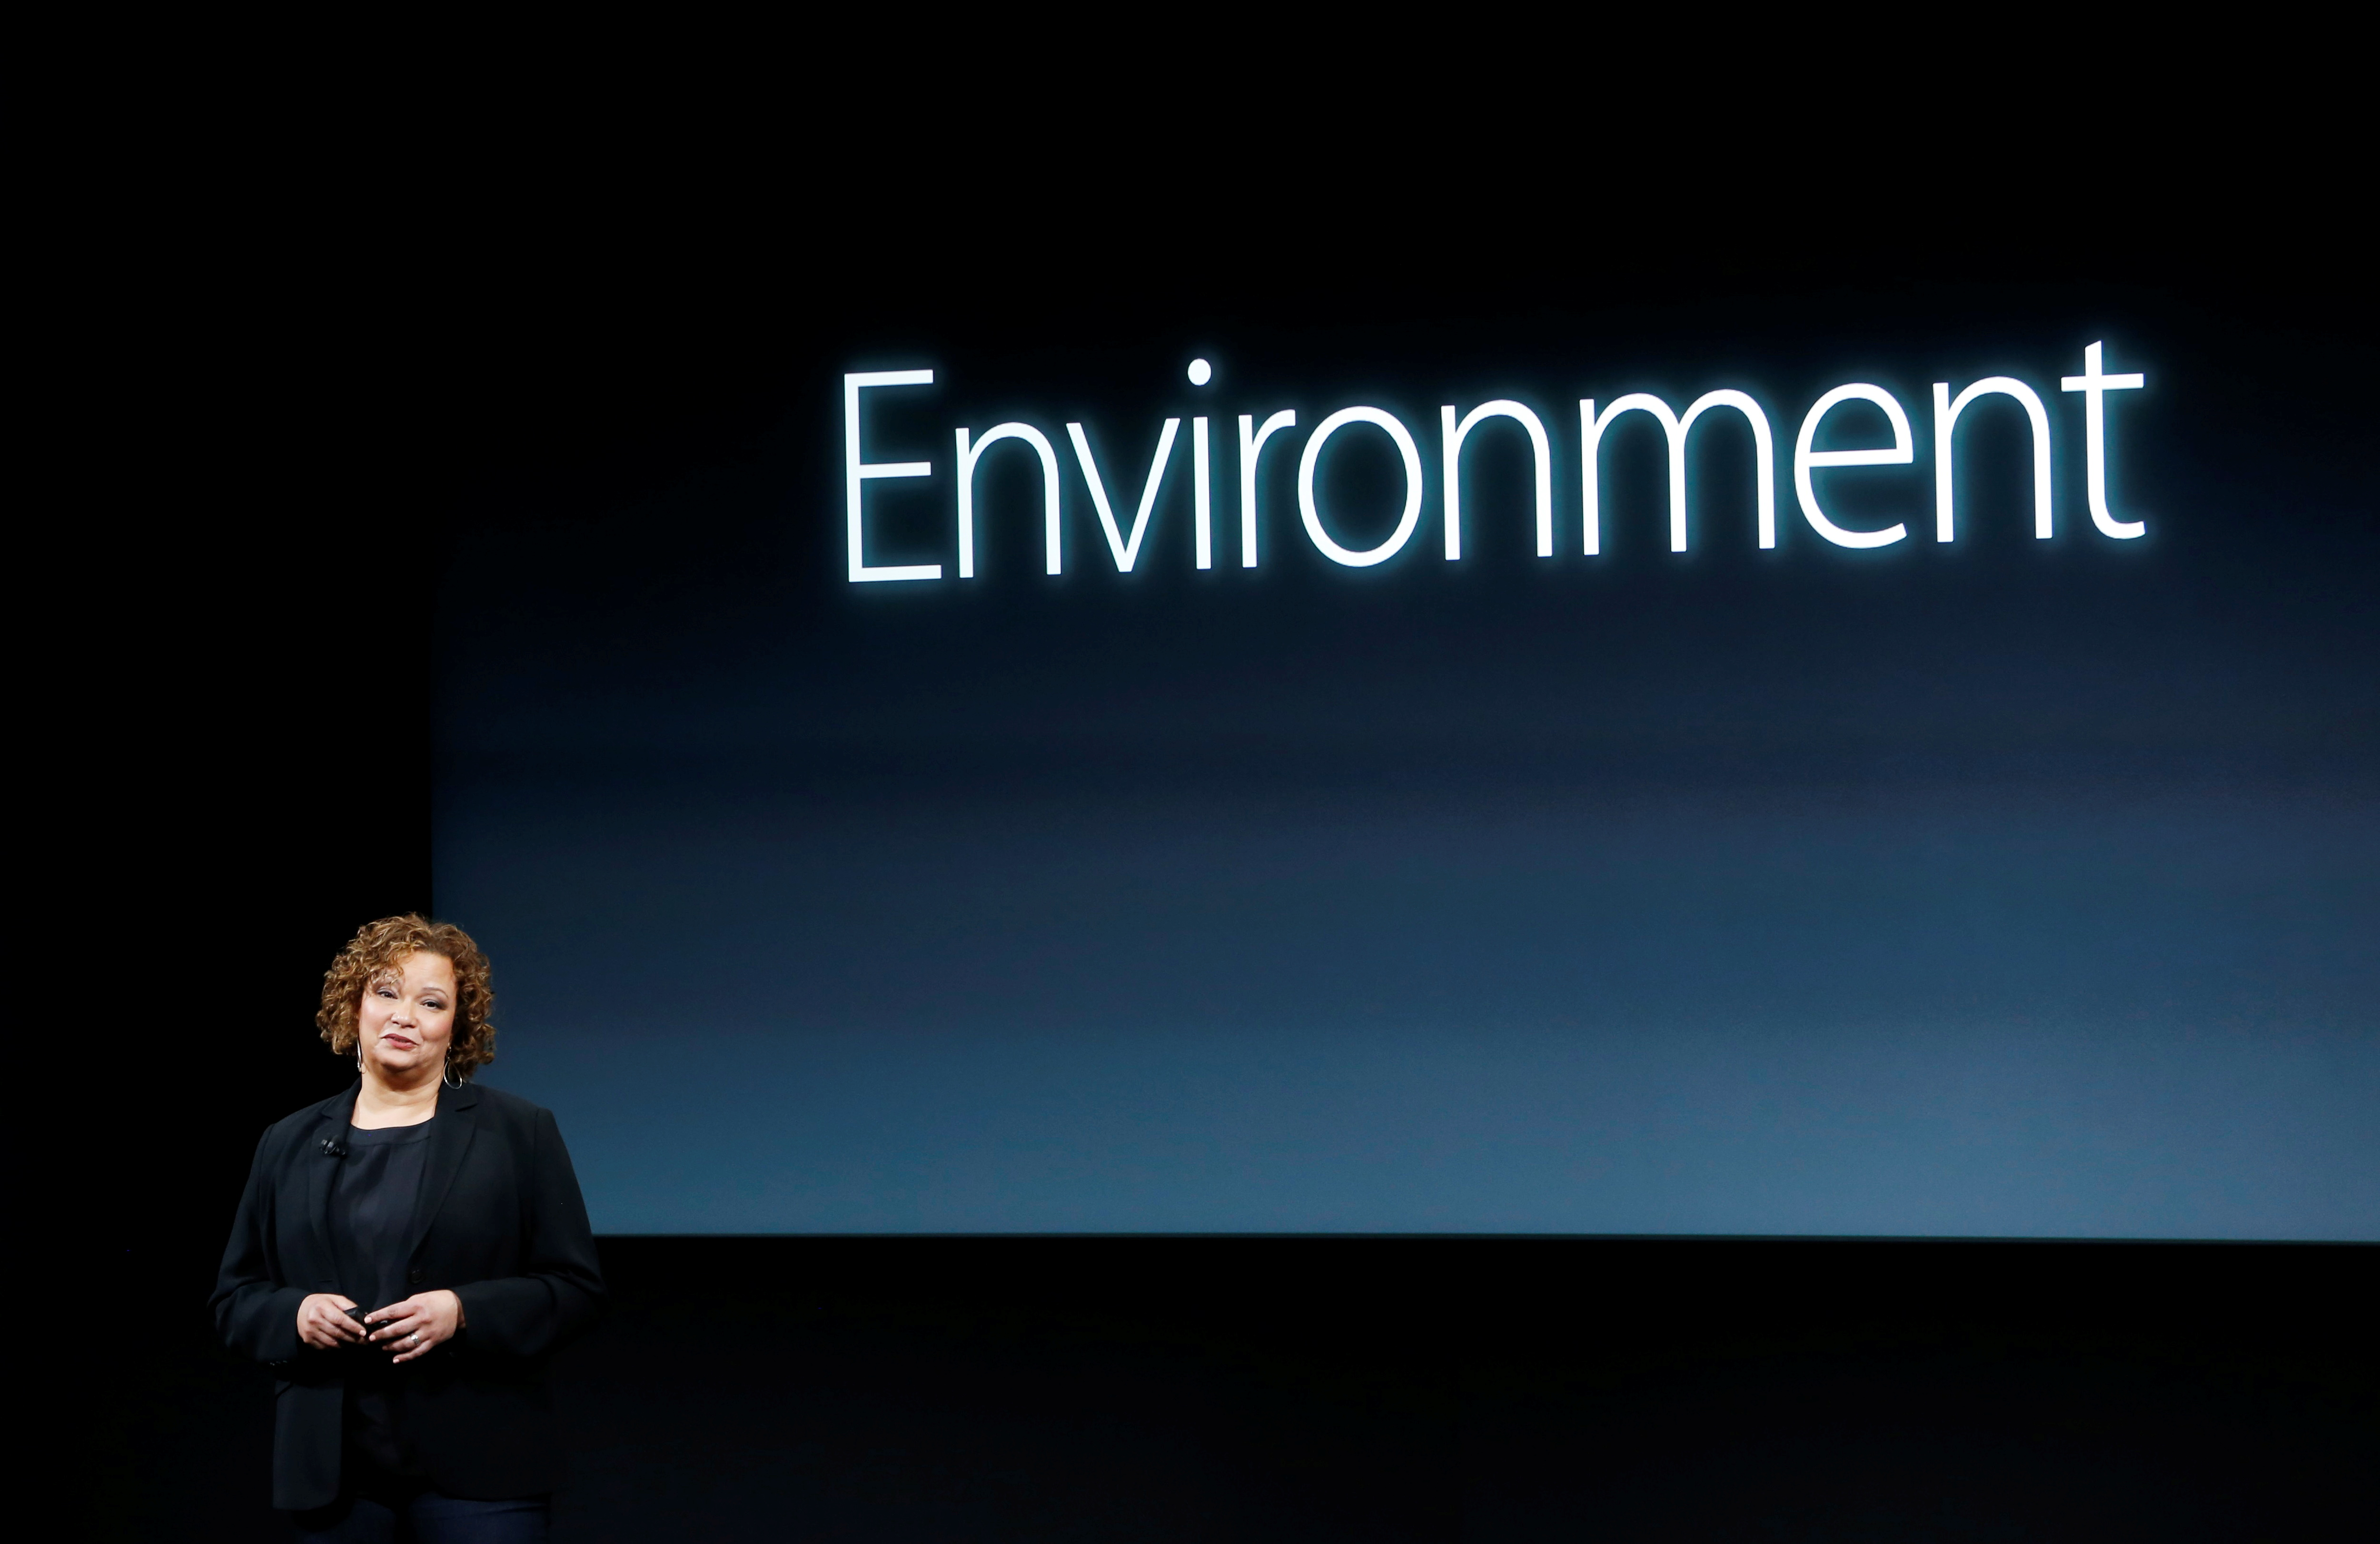 Lisa Jackson, Apple vice president for Environment, Policy and Social Initiatives, speaks during an event at Apple headquarters in Cupertino, California March 21, 2016.  REUTERS/Stephan Lam/File Photo